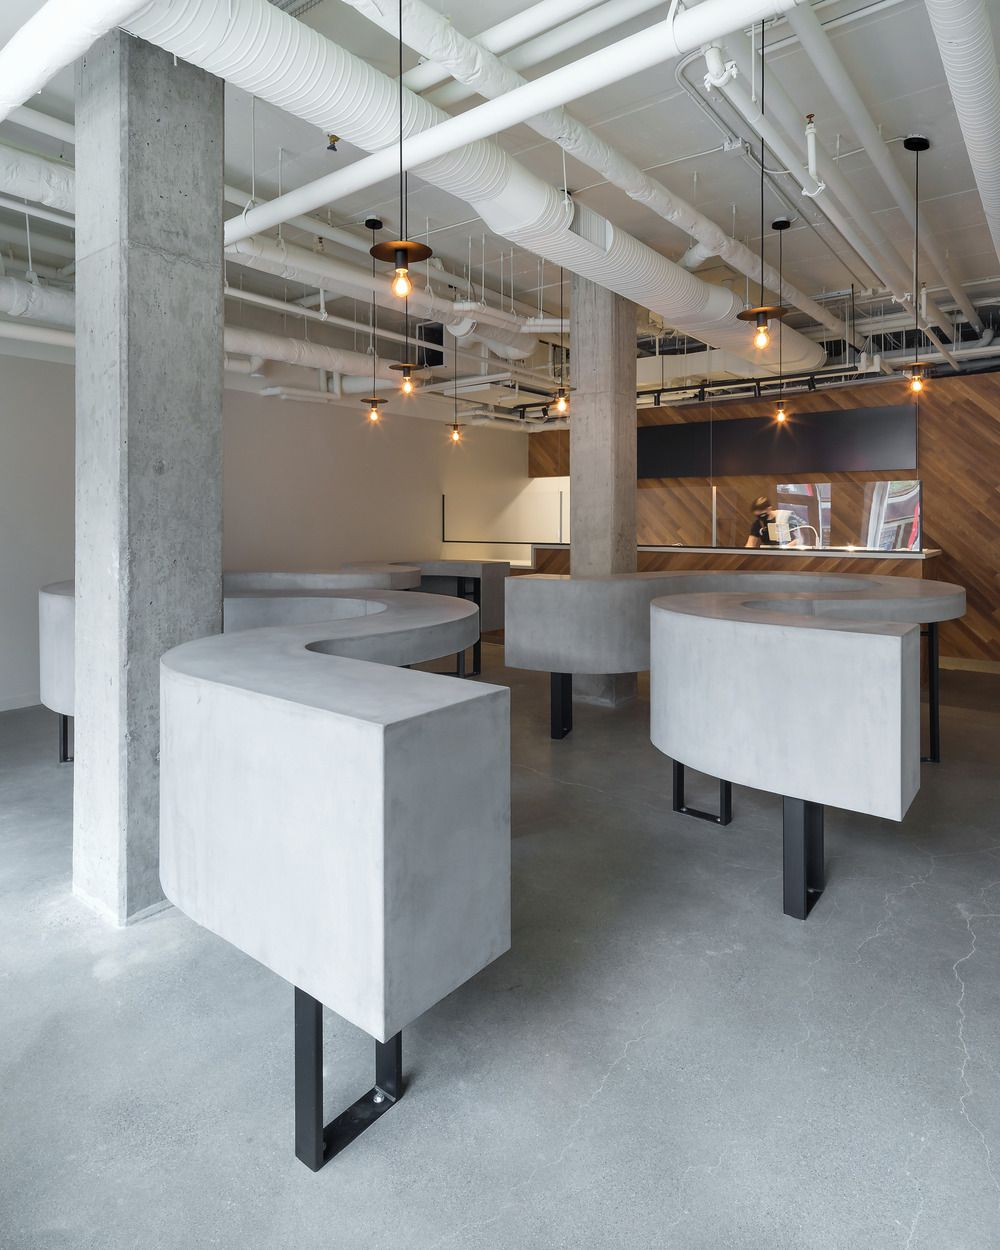 SHUCK SHUCK, A NEW FOOD CONCEPT IN VANCOUVER'S CHINATOWN, ON EAST PENDER STREET, DESIGNED BY BATAY-CSORBA ARCHITECTS